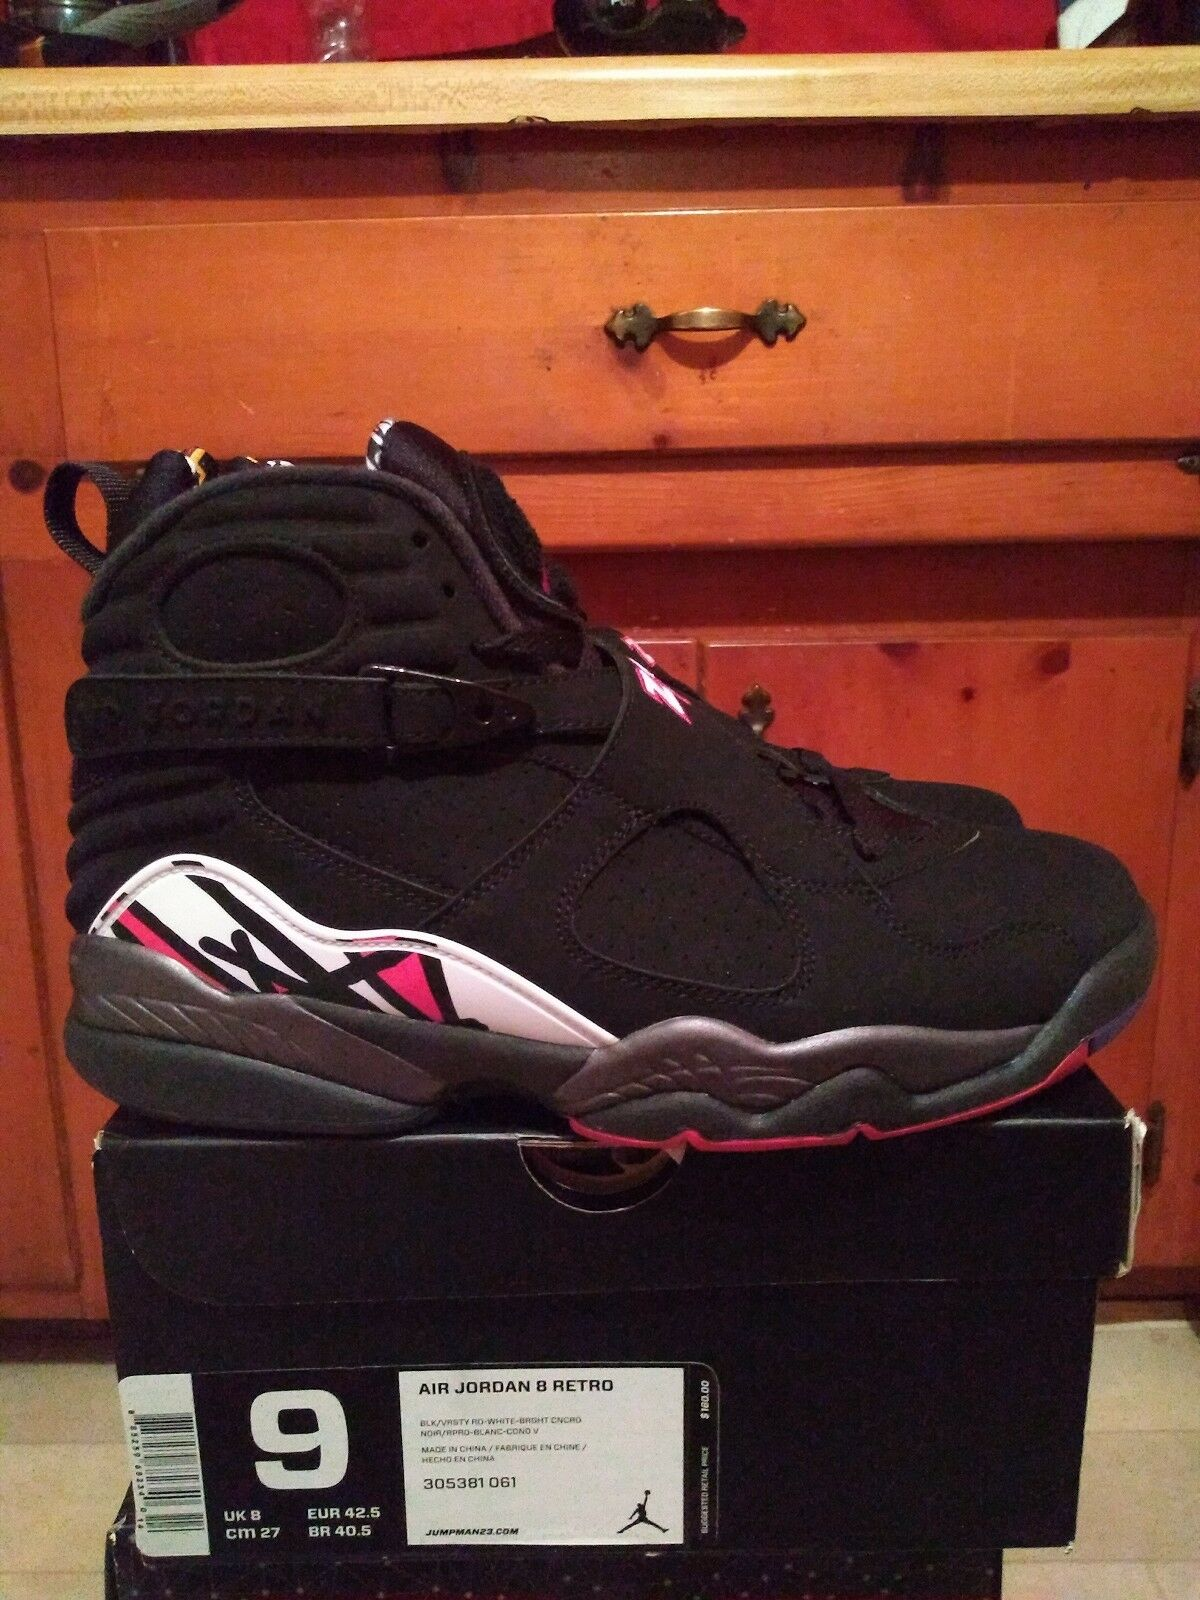 Jordan 8 Playoff Black Red Bugs Size 9 DS With Receipt